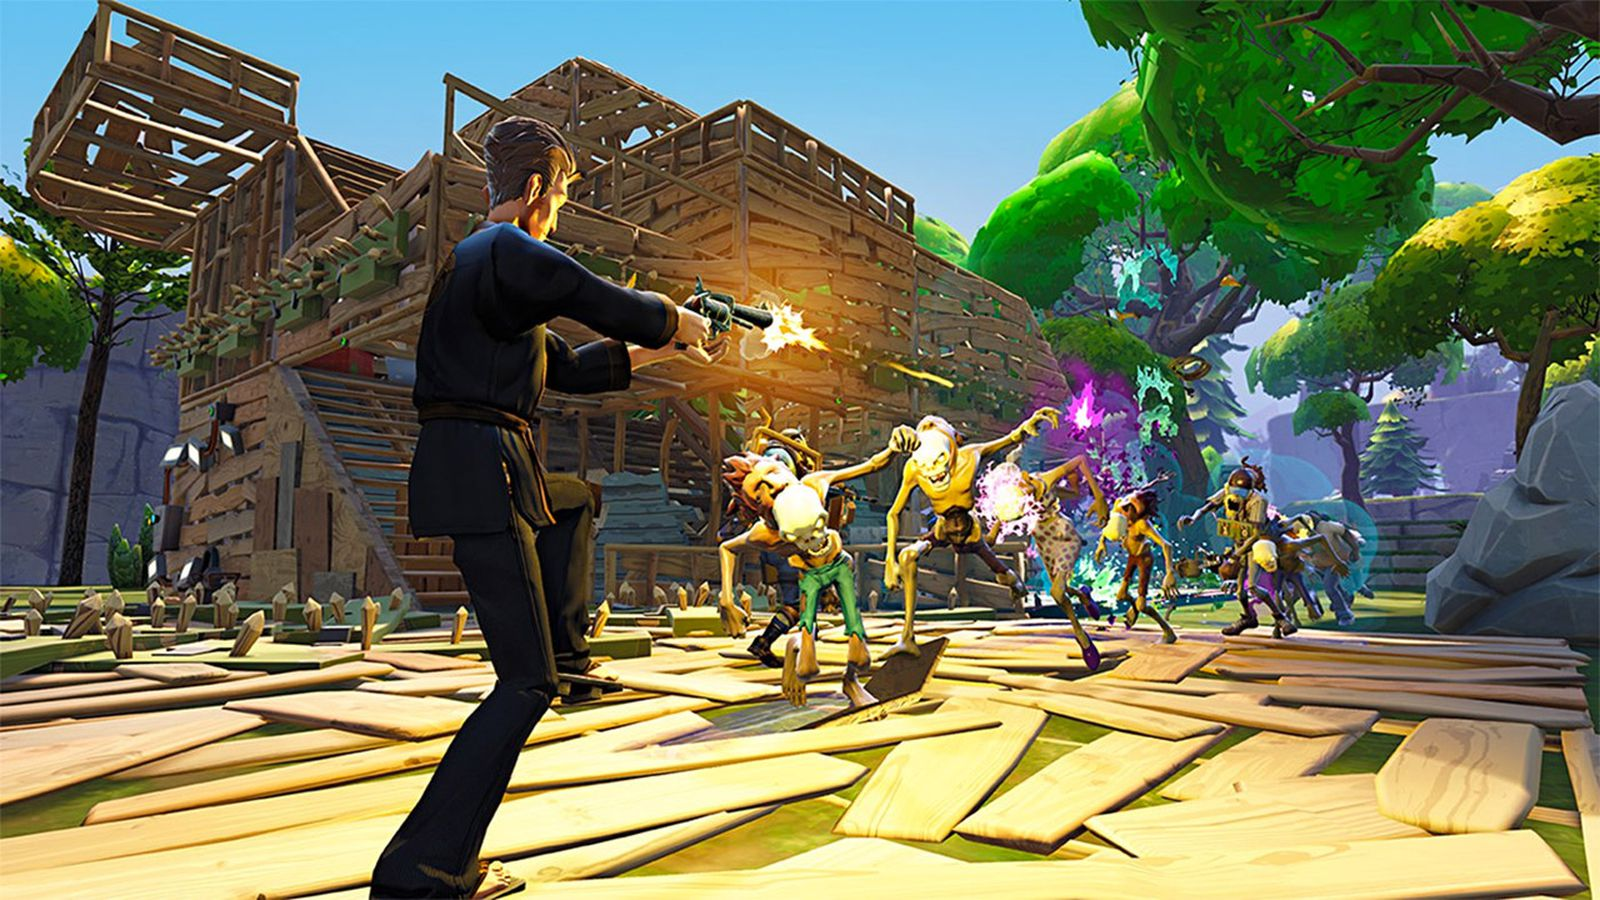 Fortnite will get an open beta by 2018 - Polygon